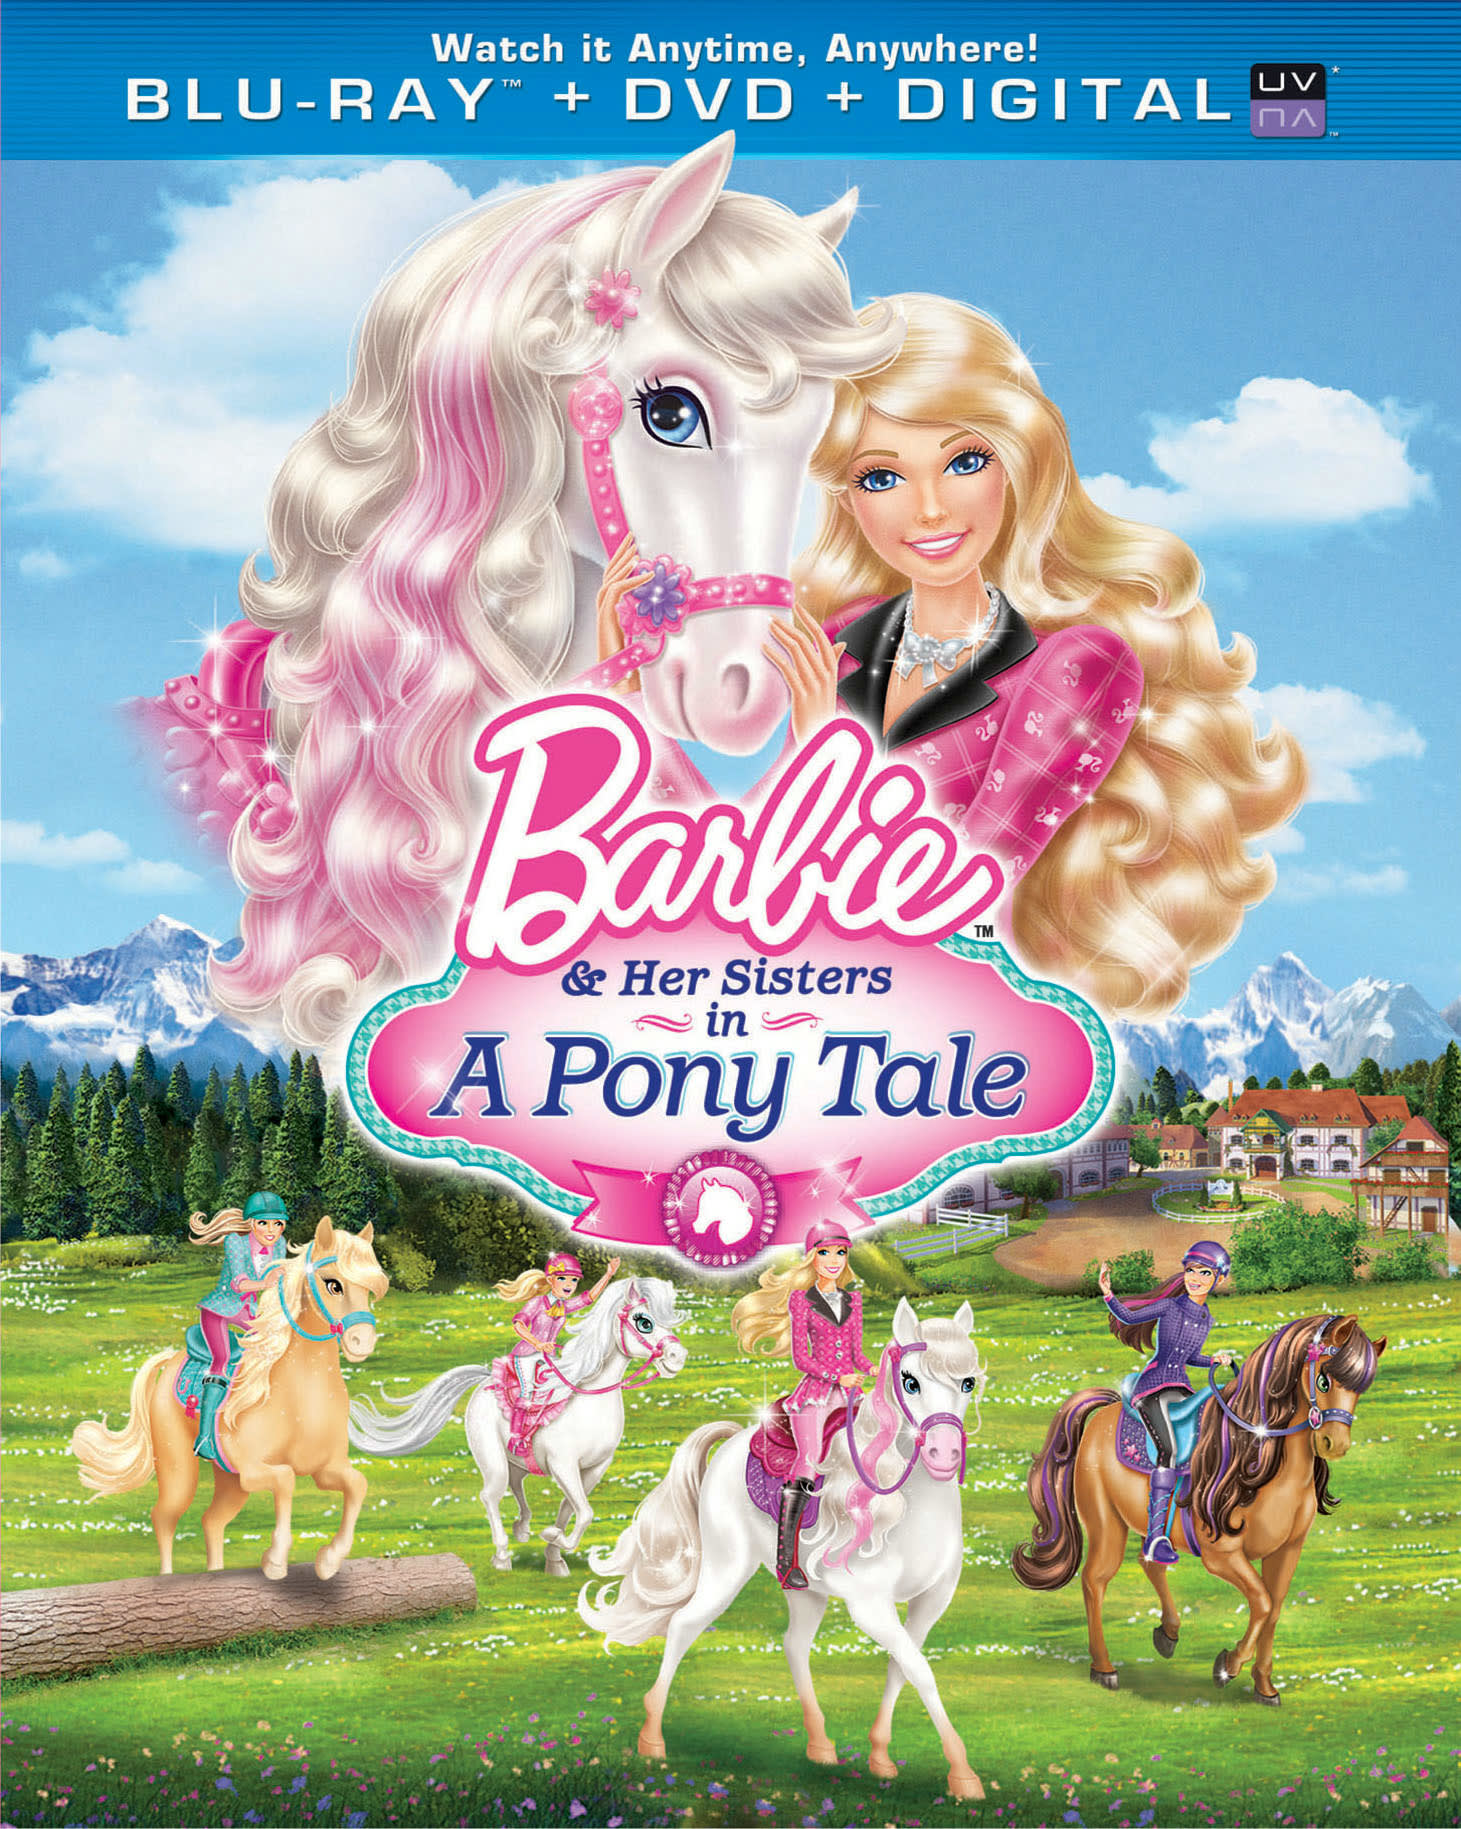 Barbie and Her Sisters in a Pony Tale (DVD + Digital) [Blu-ray]